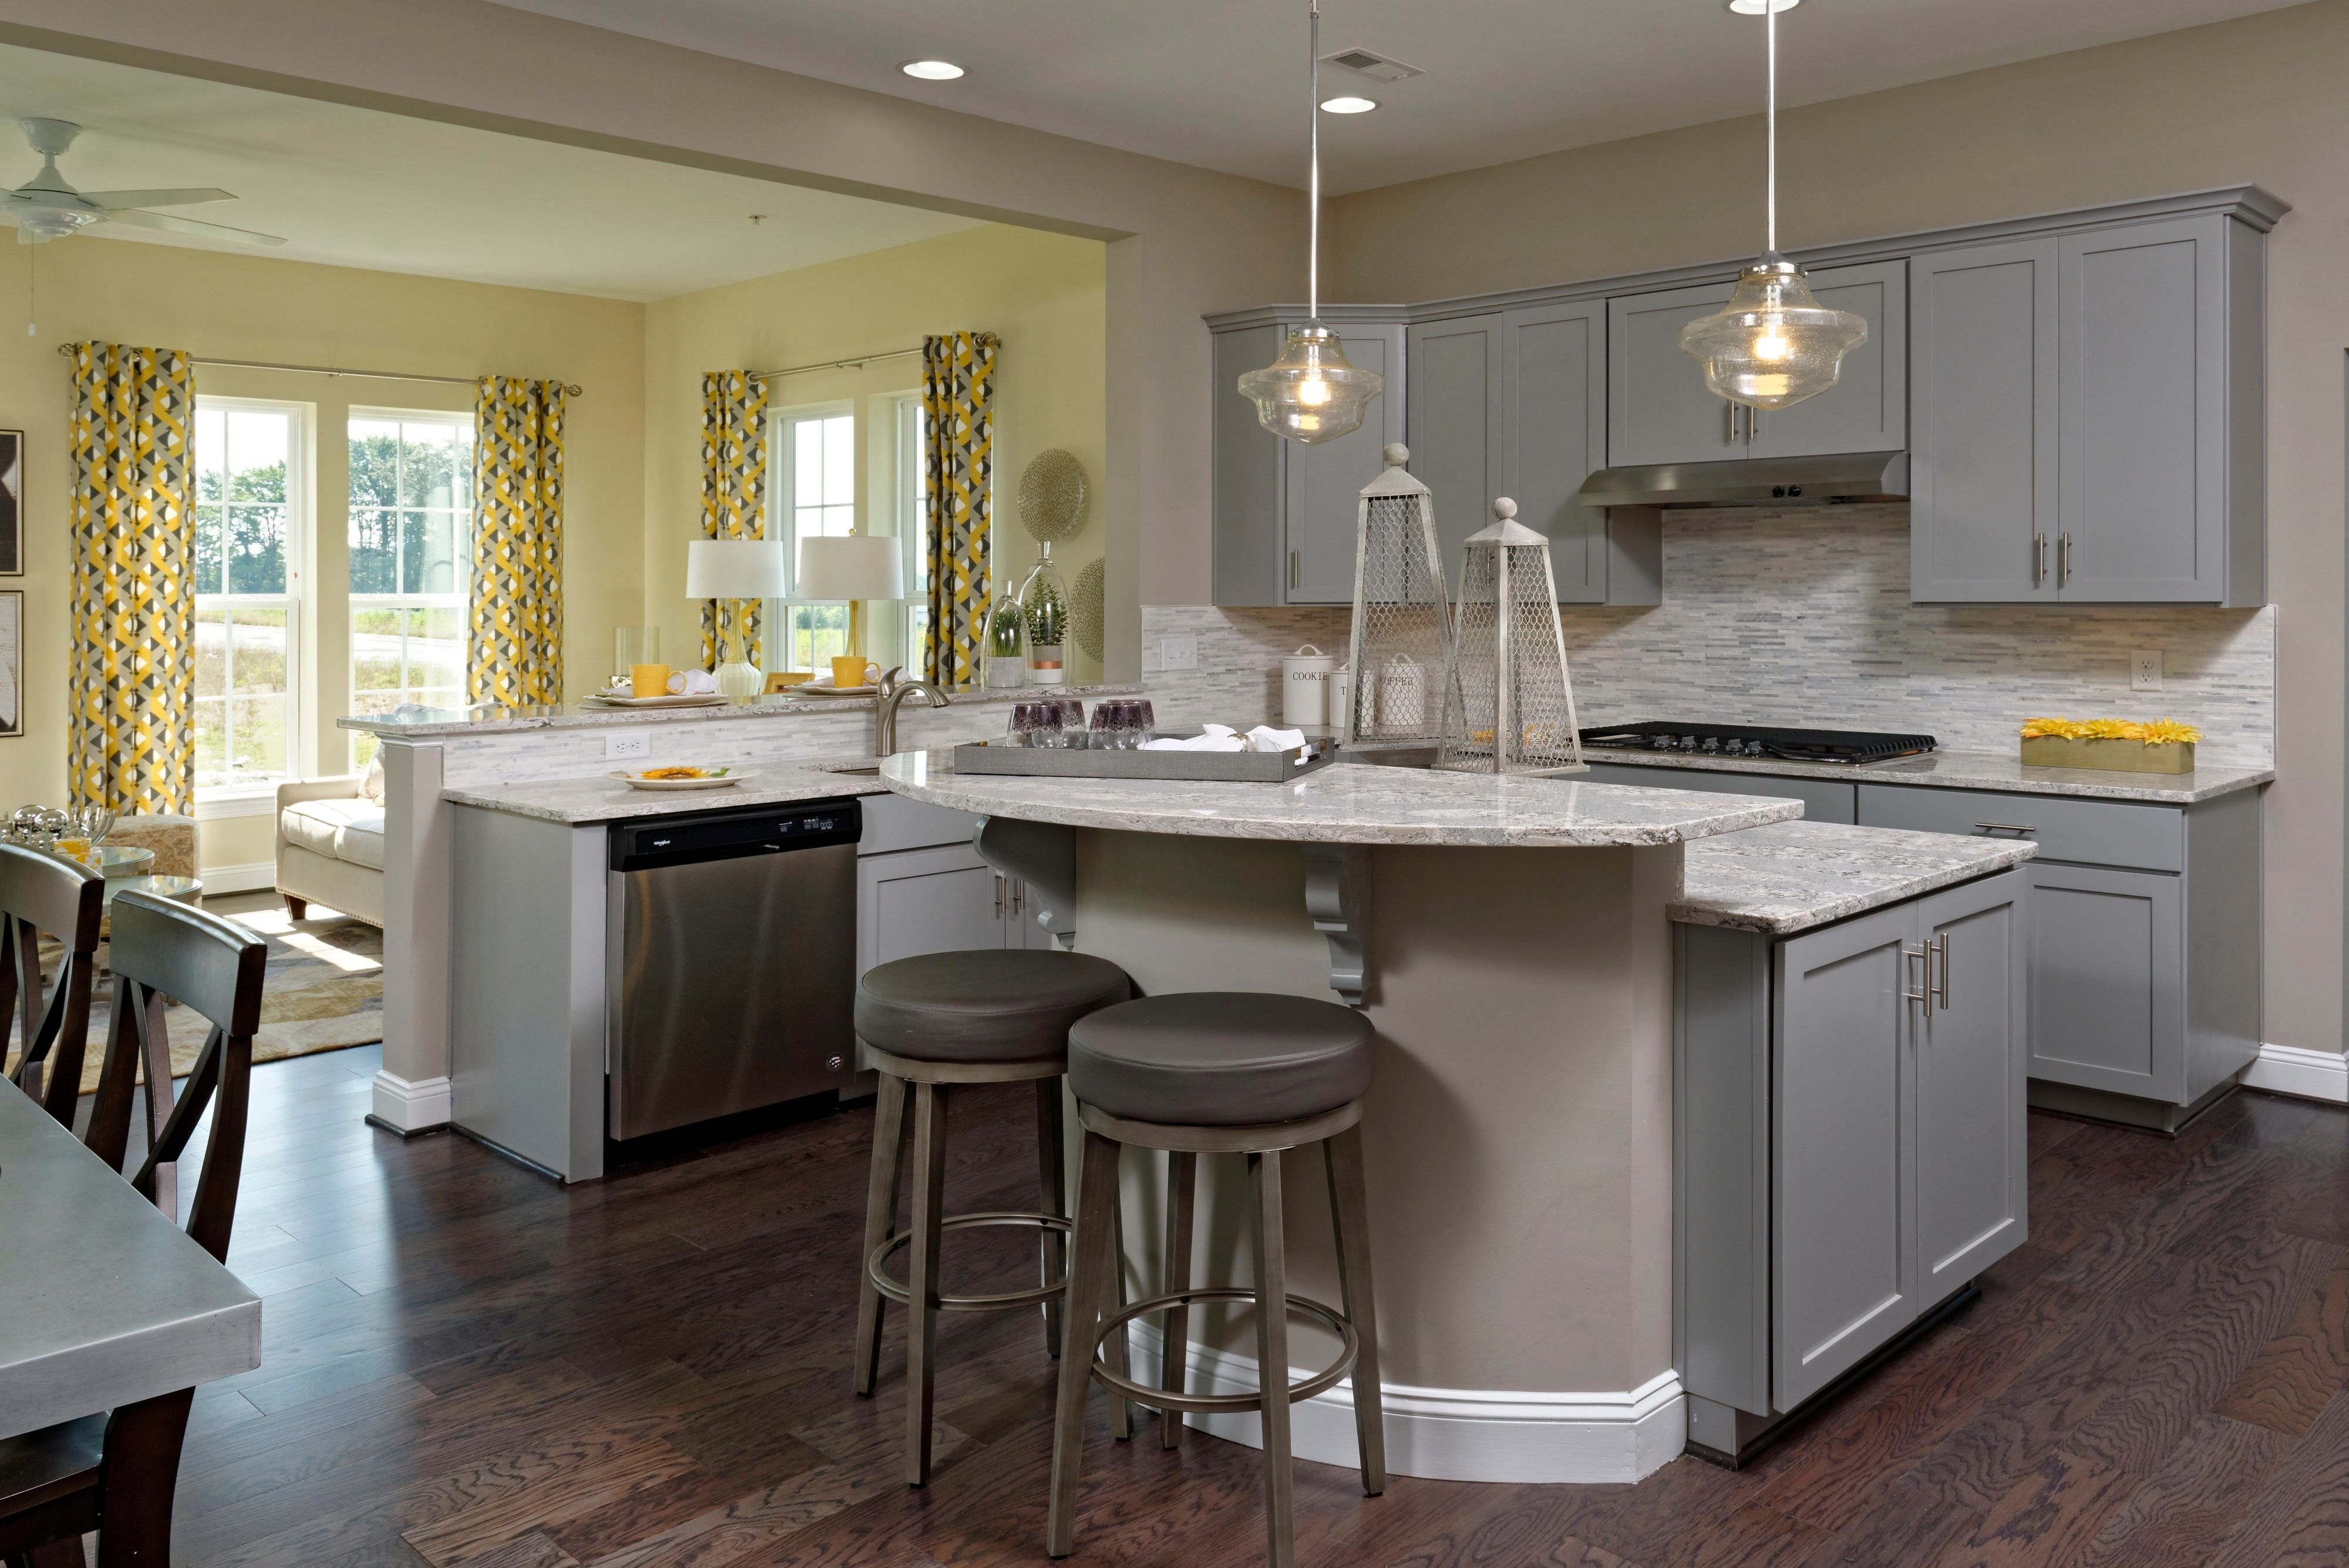 Kitchen featured in the Federal Hill By Williamsburg Homes LLC in Baltimore, MD